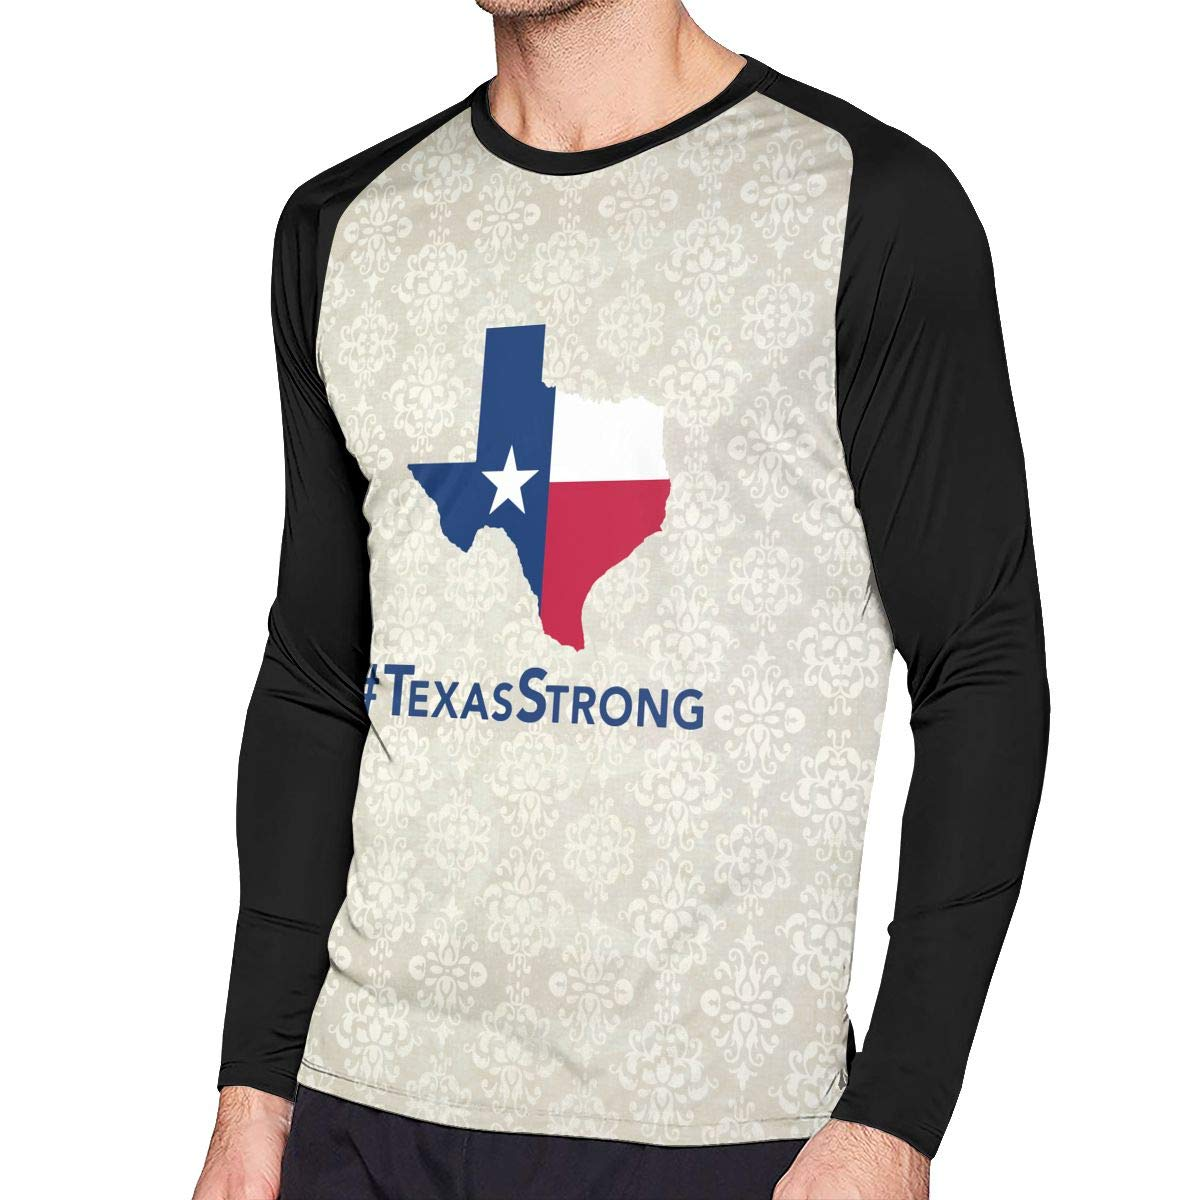 Men T-Shirt Casual Texas Strong Long-Sleeved T-Shirt Top for Men